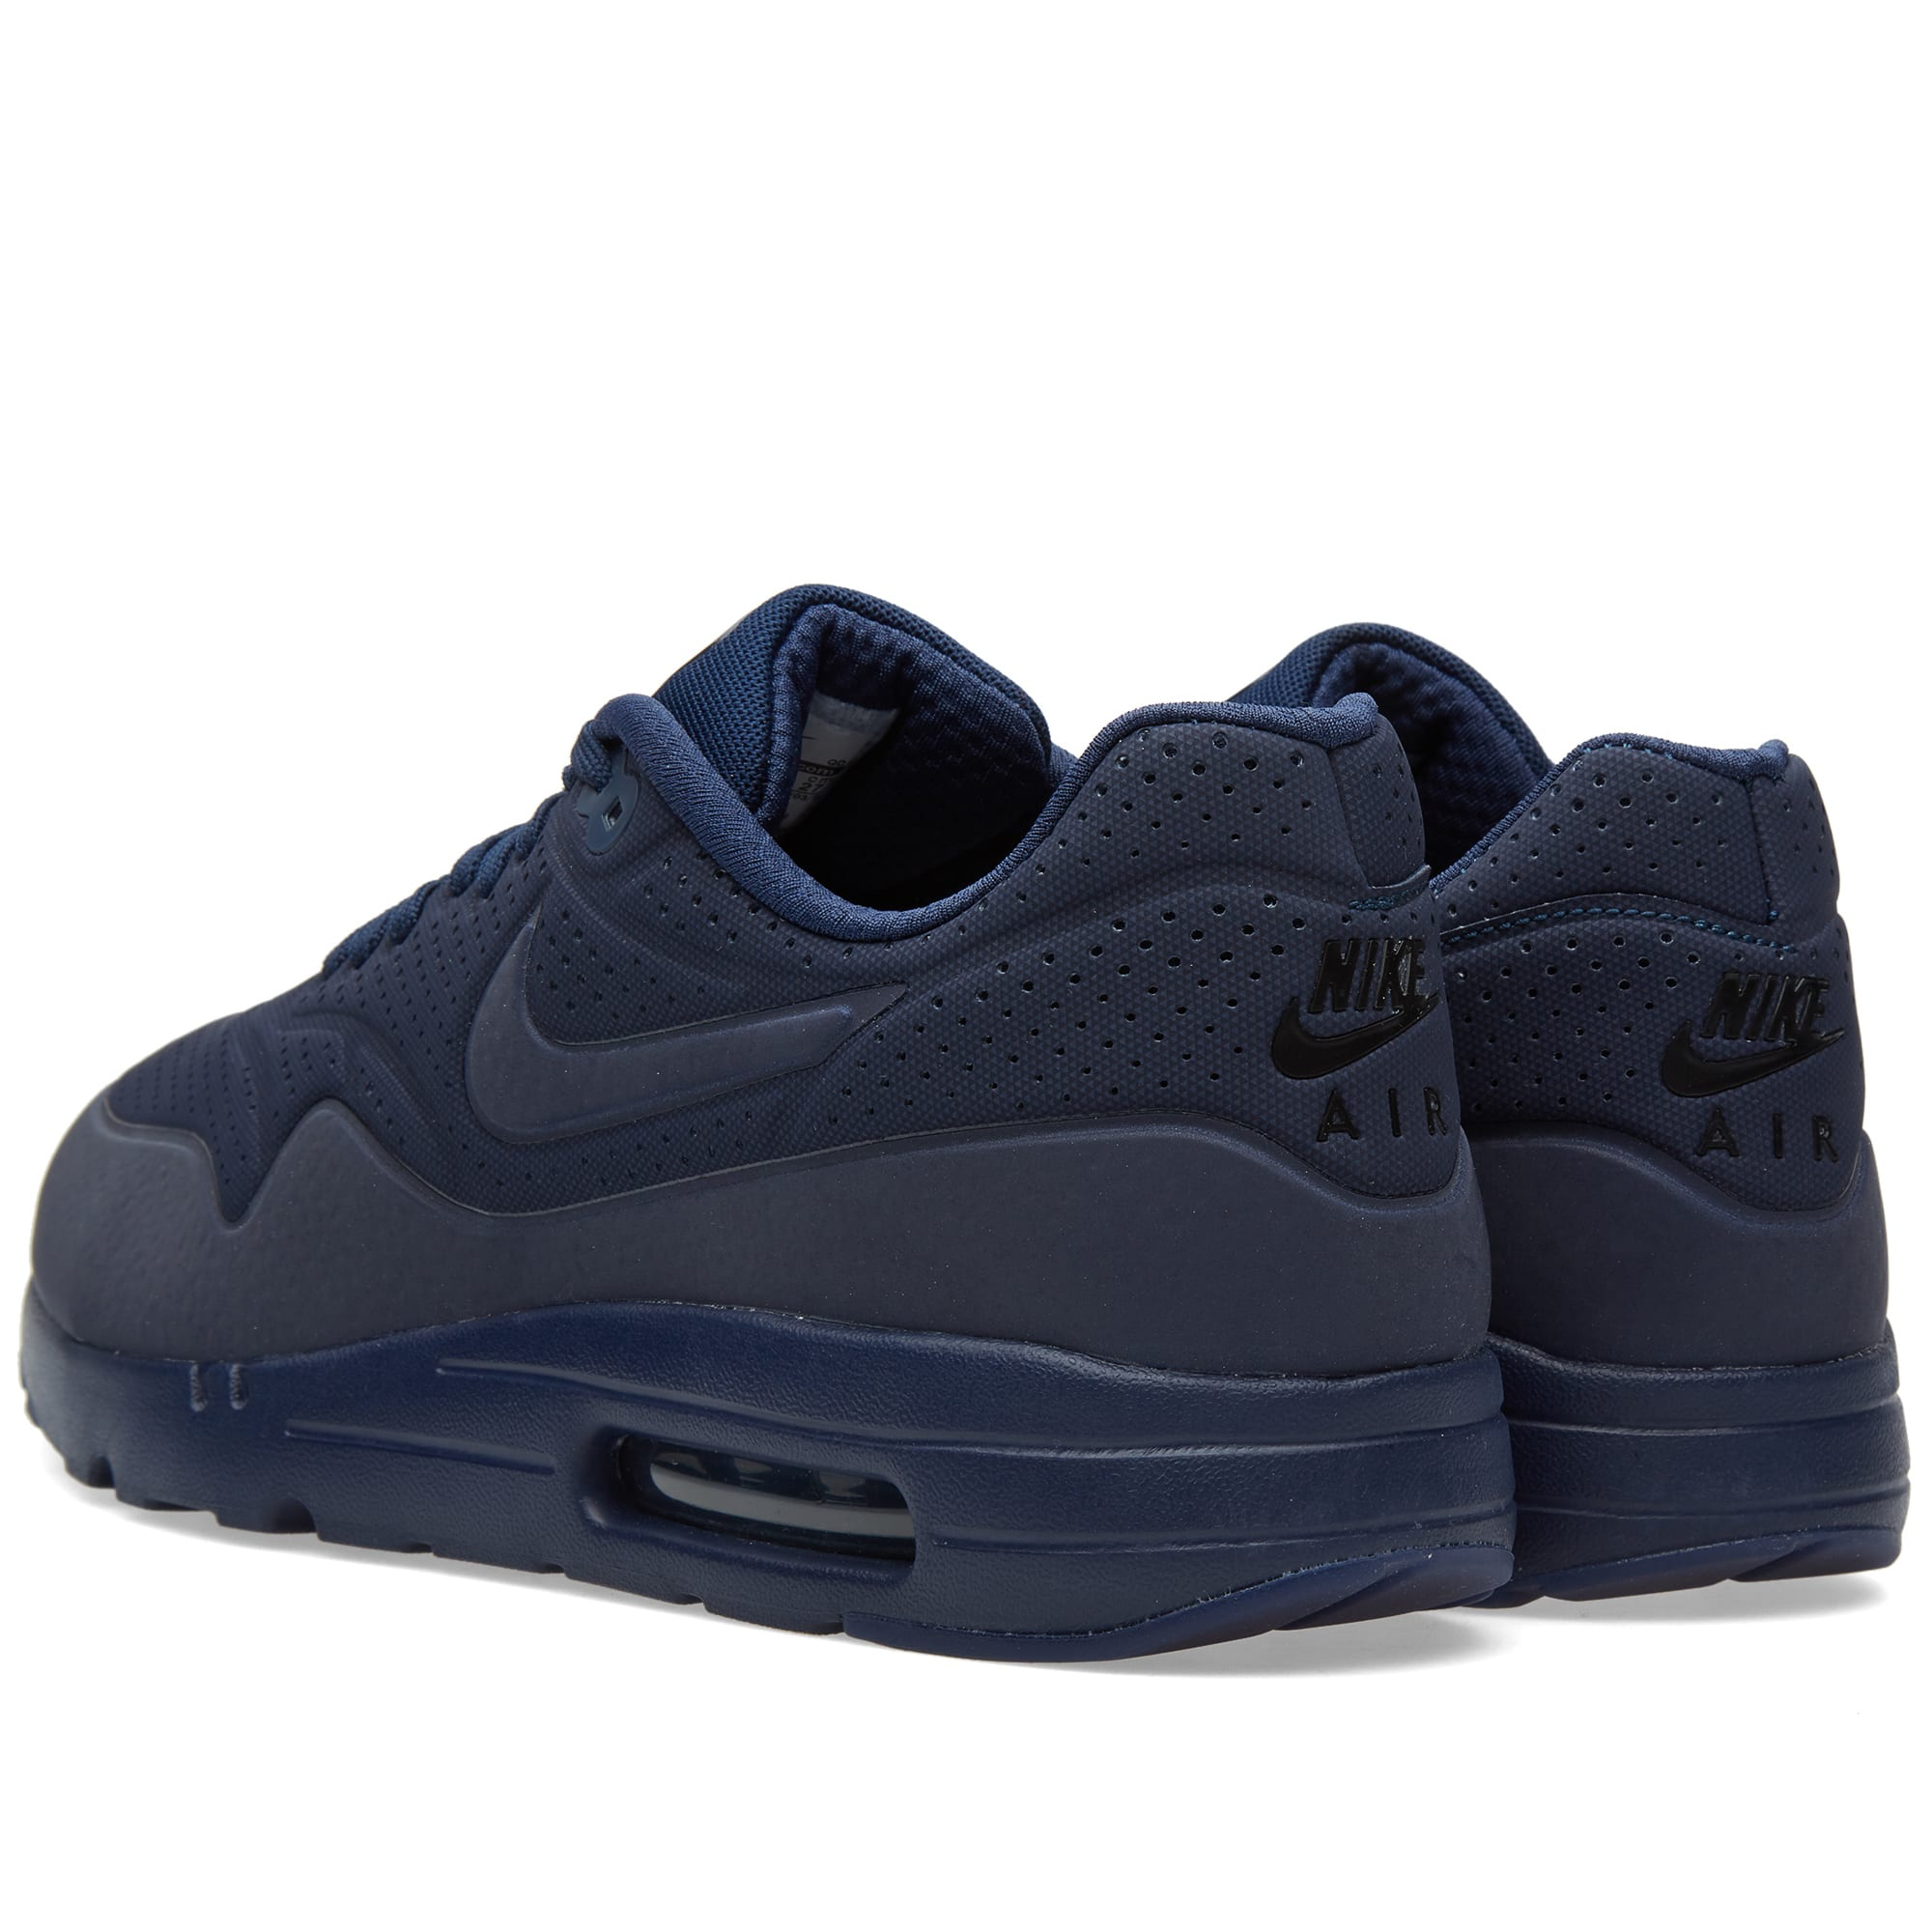 new styles e1d72 d803e Nike Air Max 1 Ultra Moire. Midnight Navy   Black